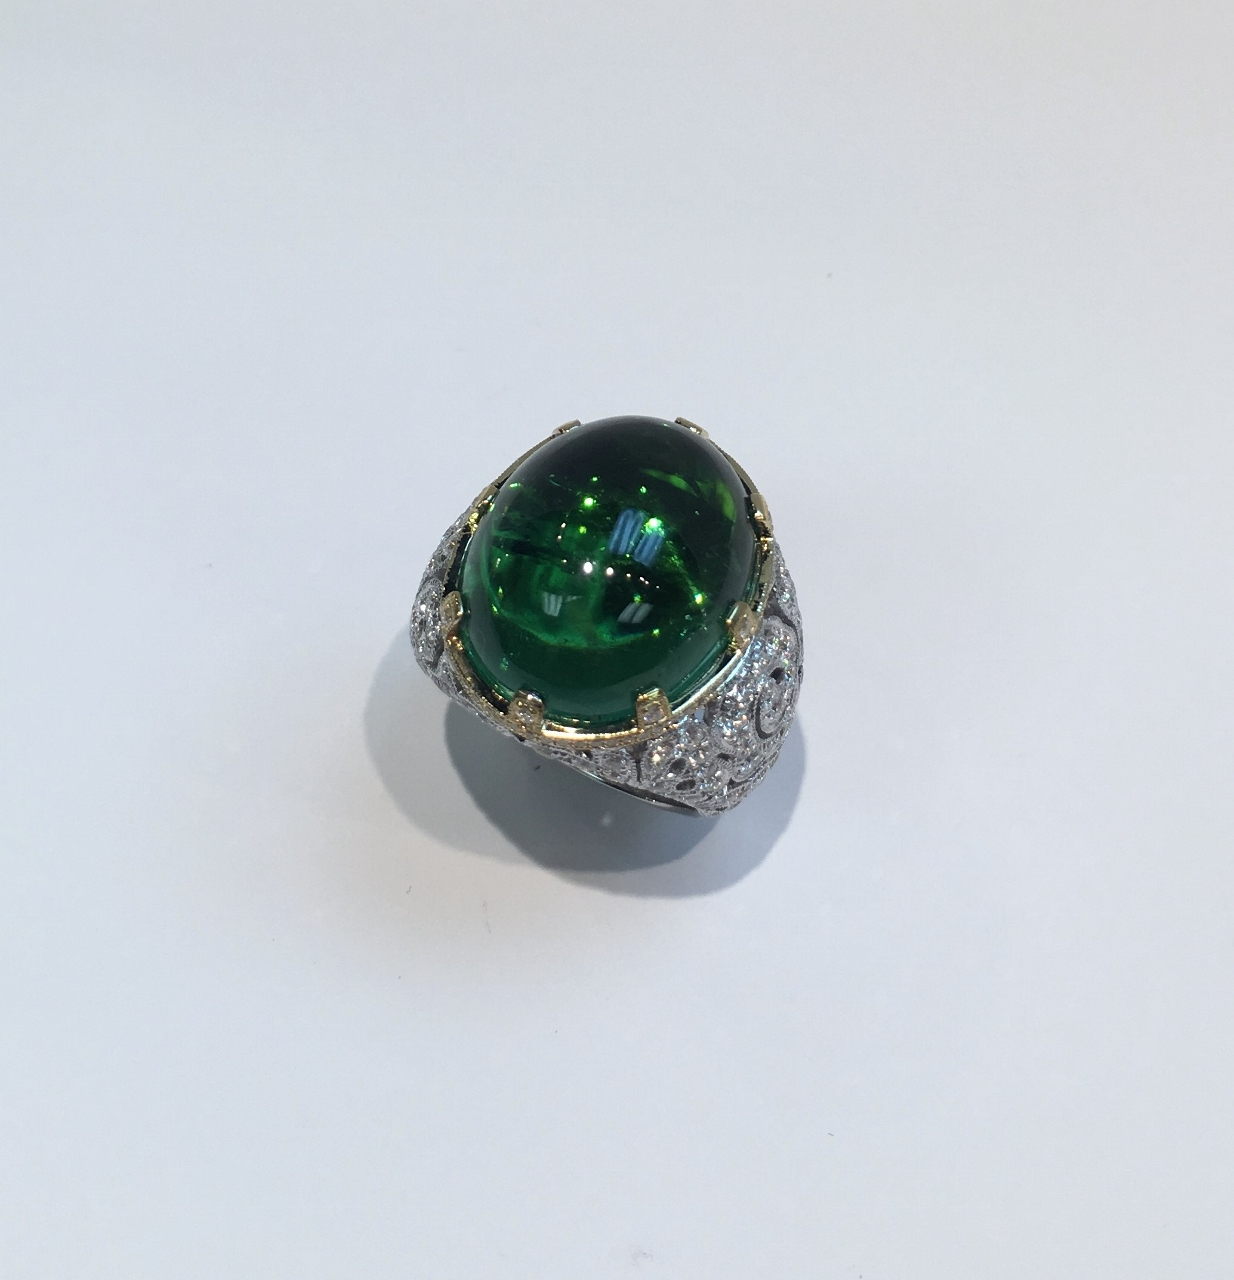 Almost 25 Carats Green Tourmaline And Diamond Ring